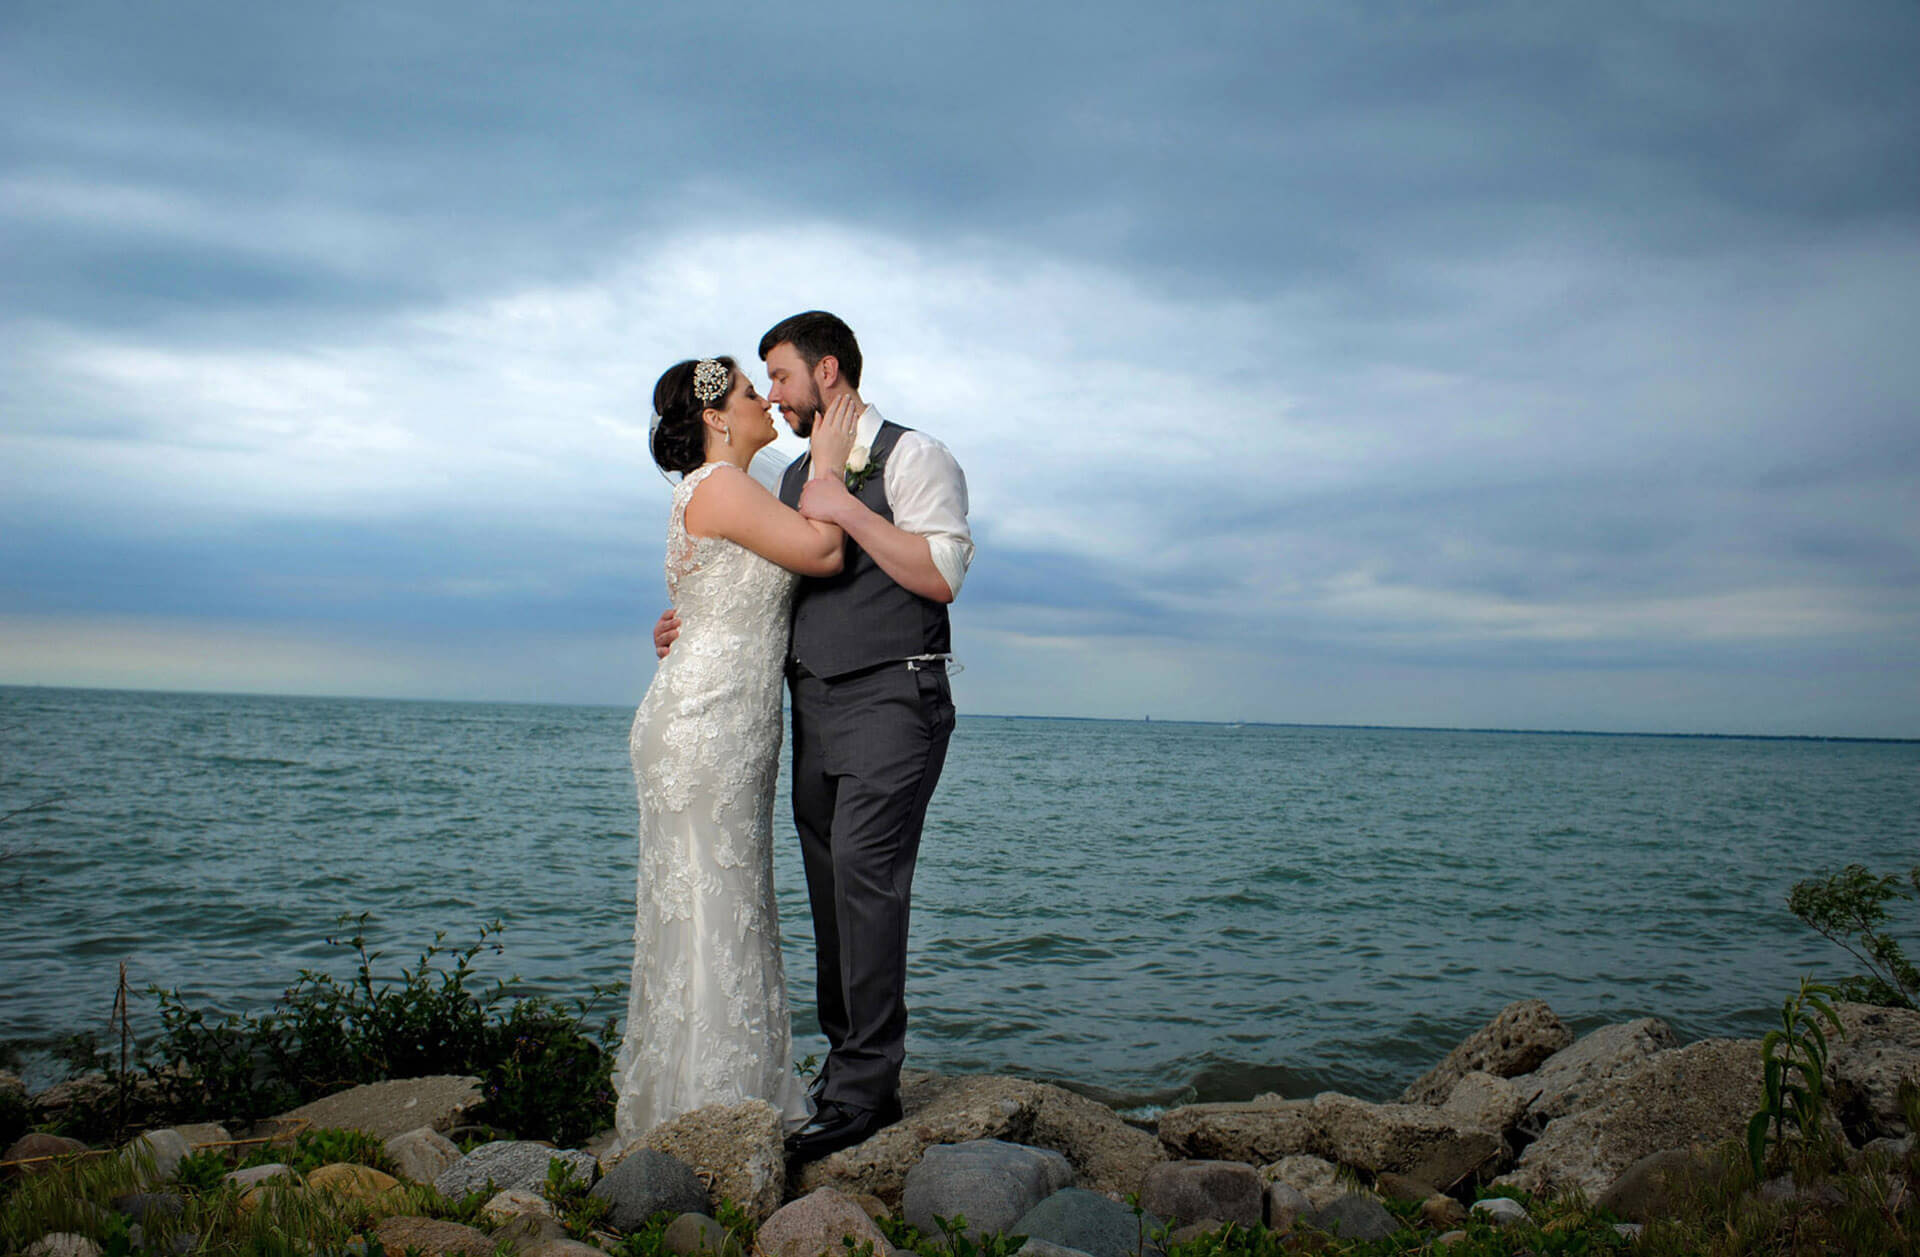 Incredible wedding photography from the Metro Beach in Detroit features affordable wedding photography with unique and gorgeous results.